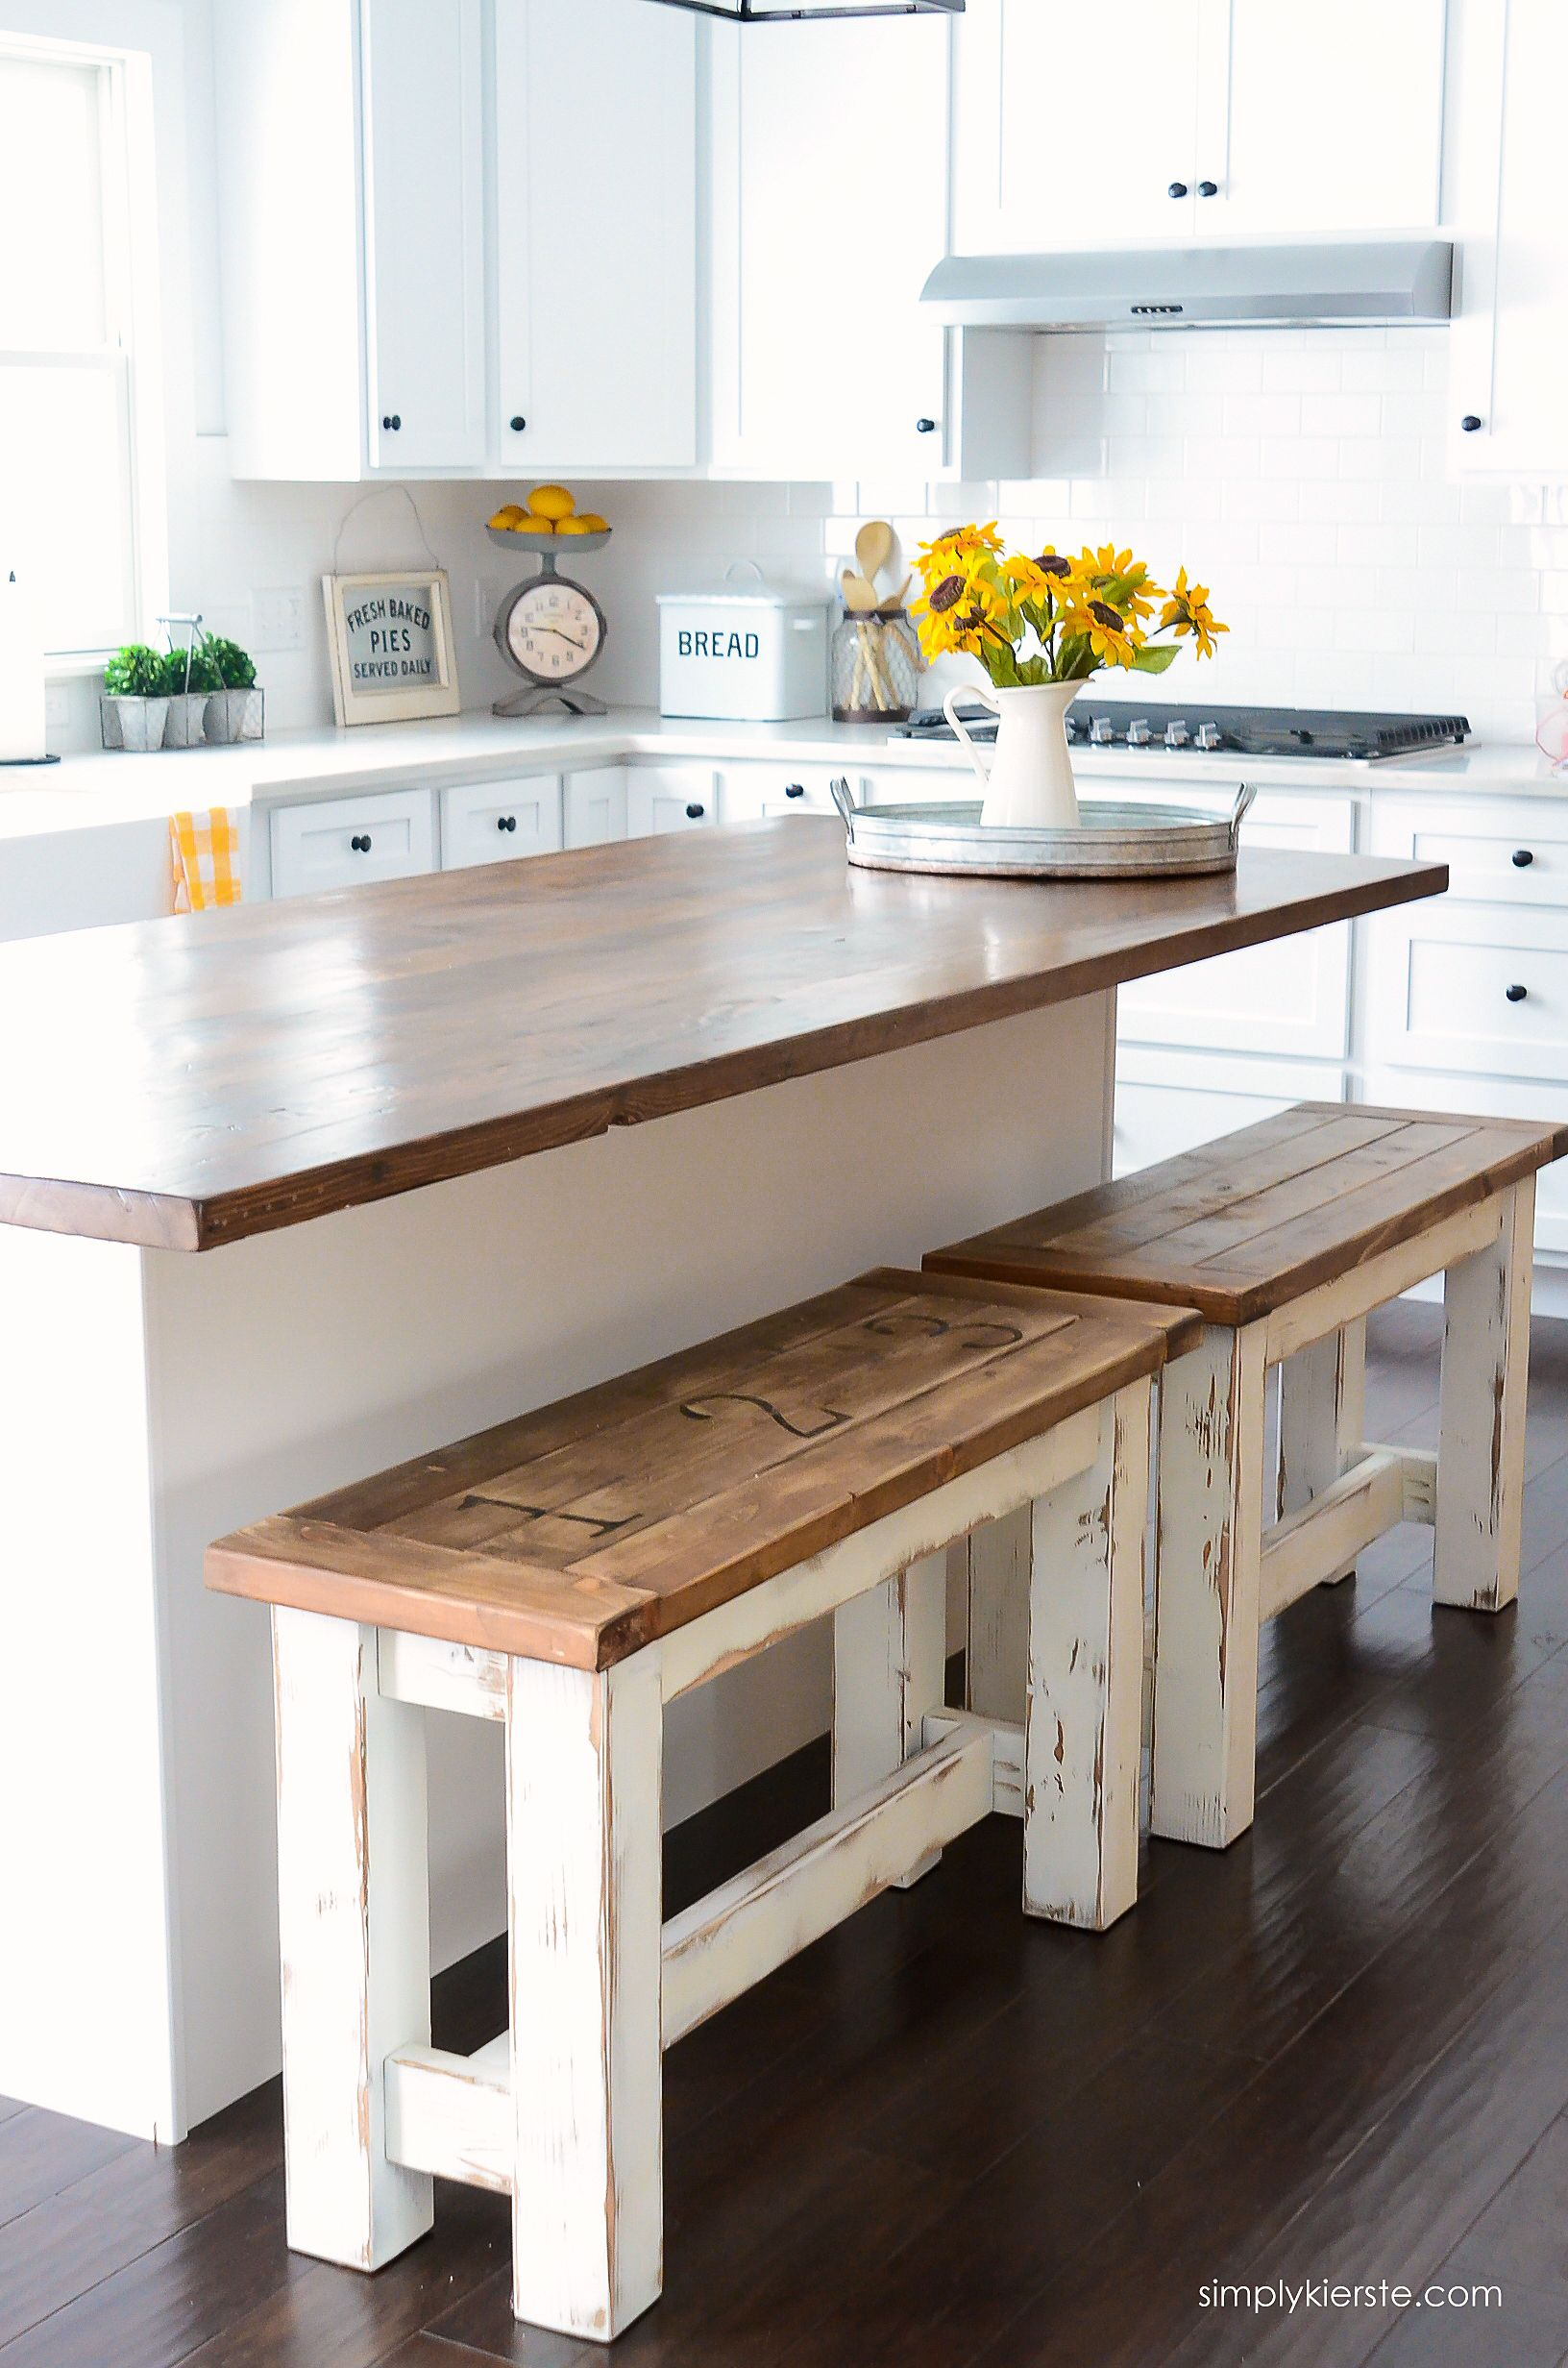 kitchen island bench ideas diy kitchen benches budget kitchen ideas farmhouse style 4994